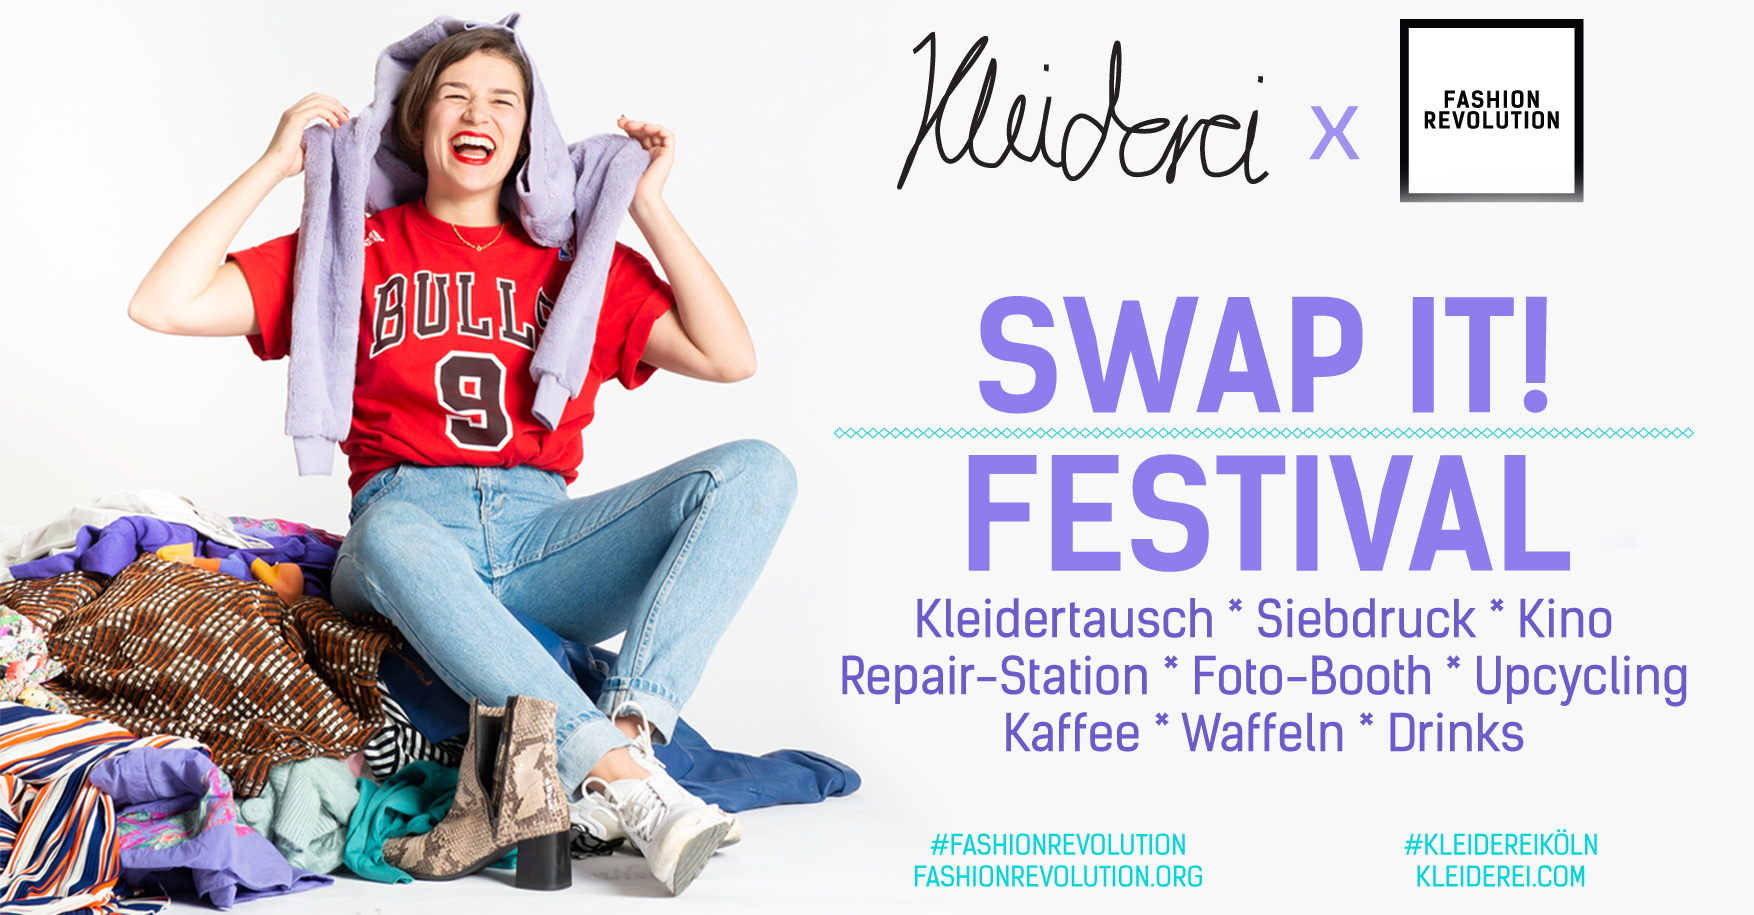 Kleiderei X FashionRevolution SWAP IT! Festival